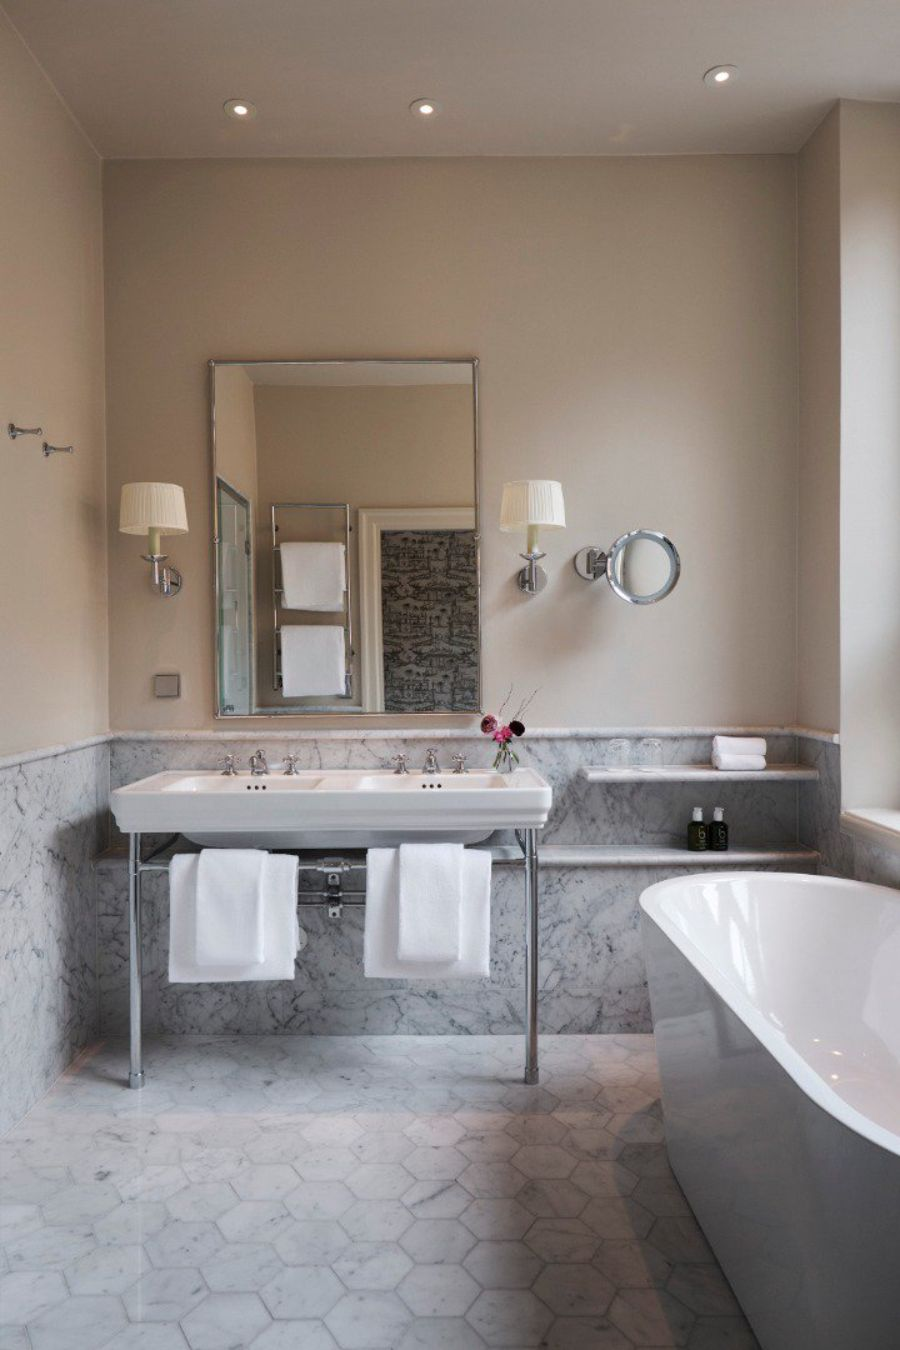 Hotel Openings May, The Luxury Boutique Hotels You Cannot Miss! Villa Dagmar Stockholm